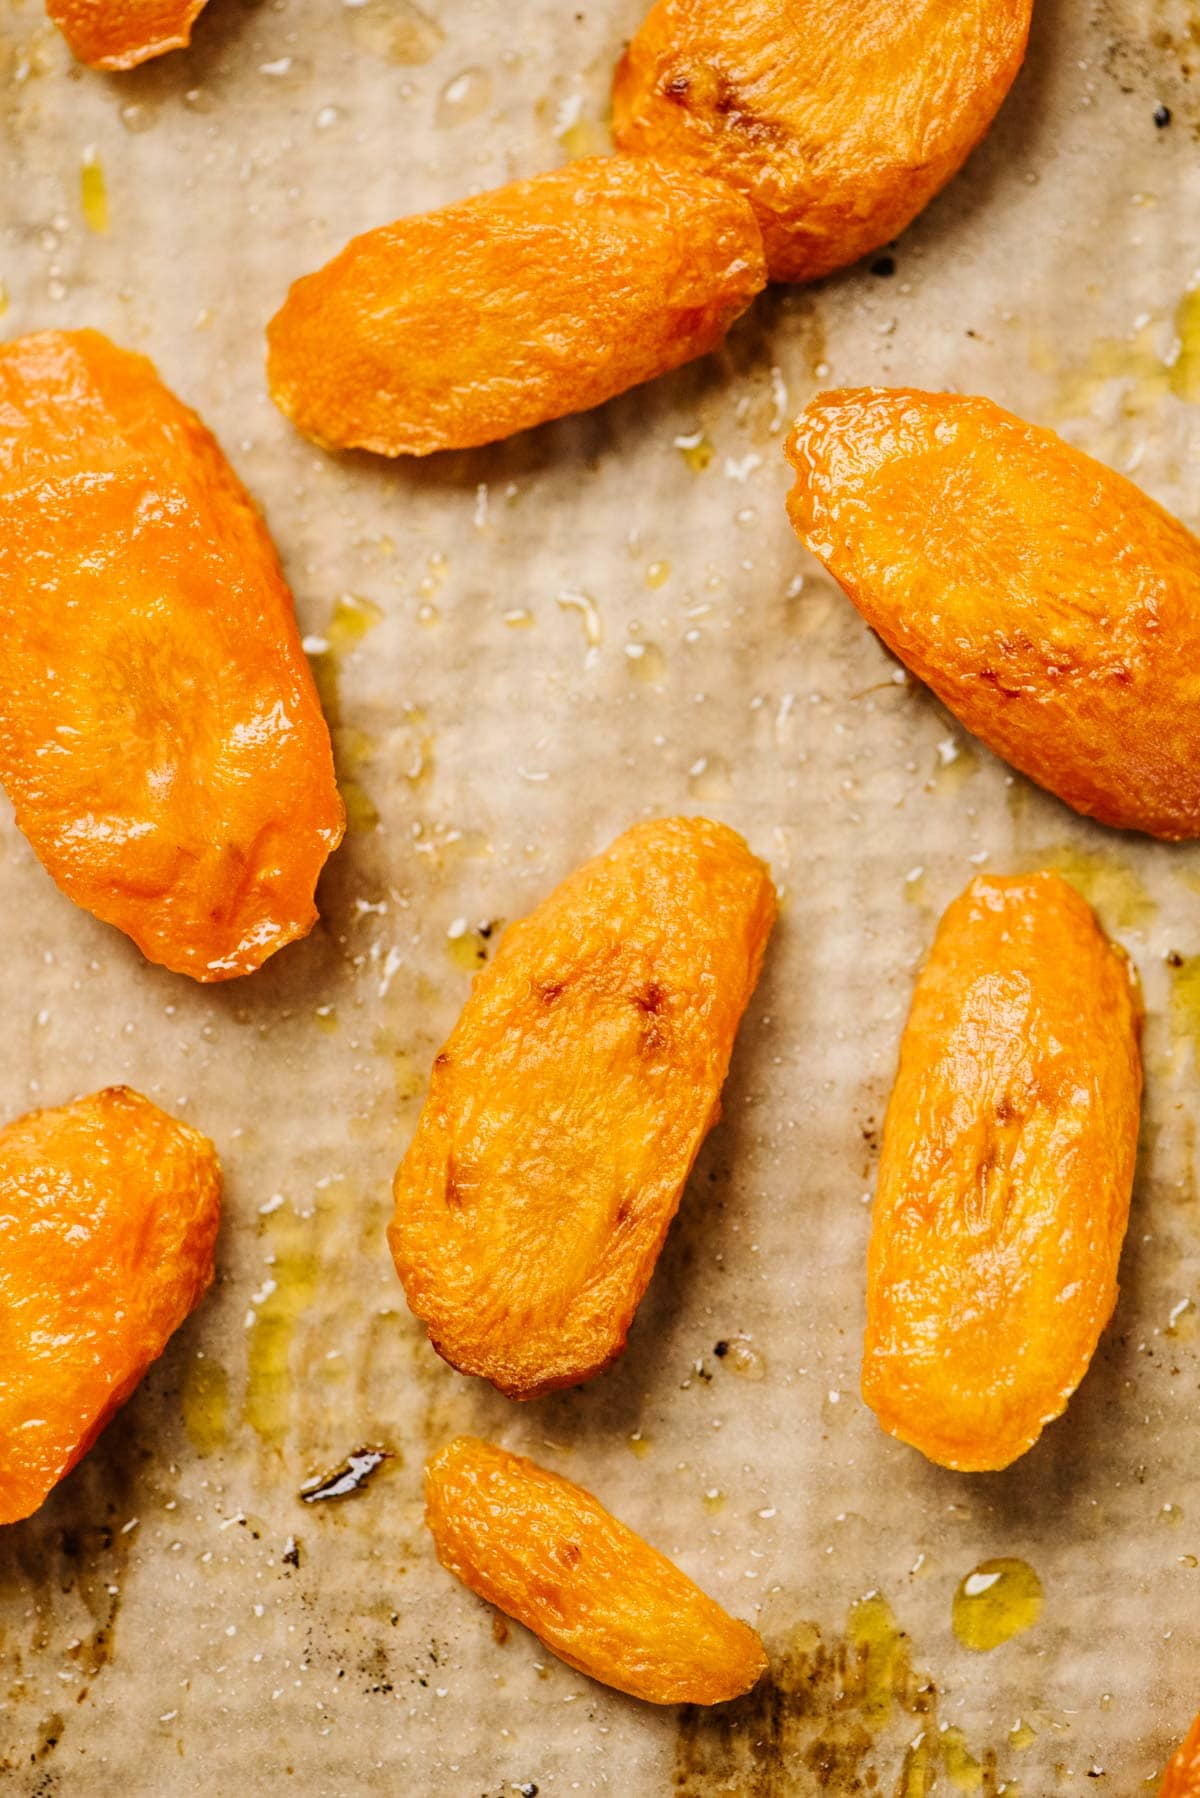 Sliced roasted carrots on a parchment lined baking sheet.